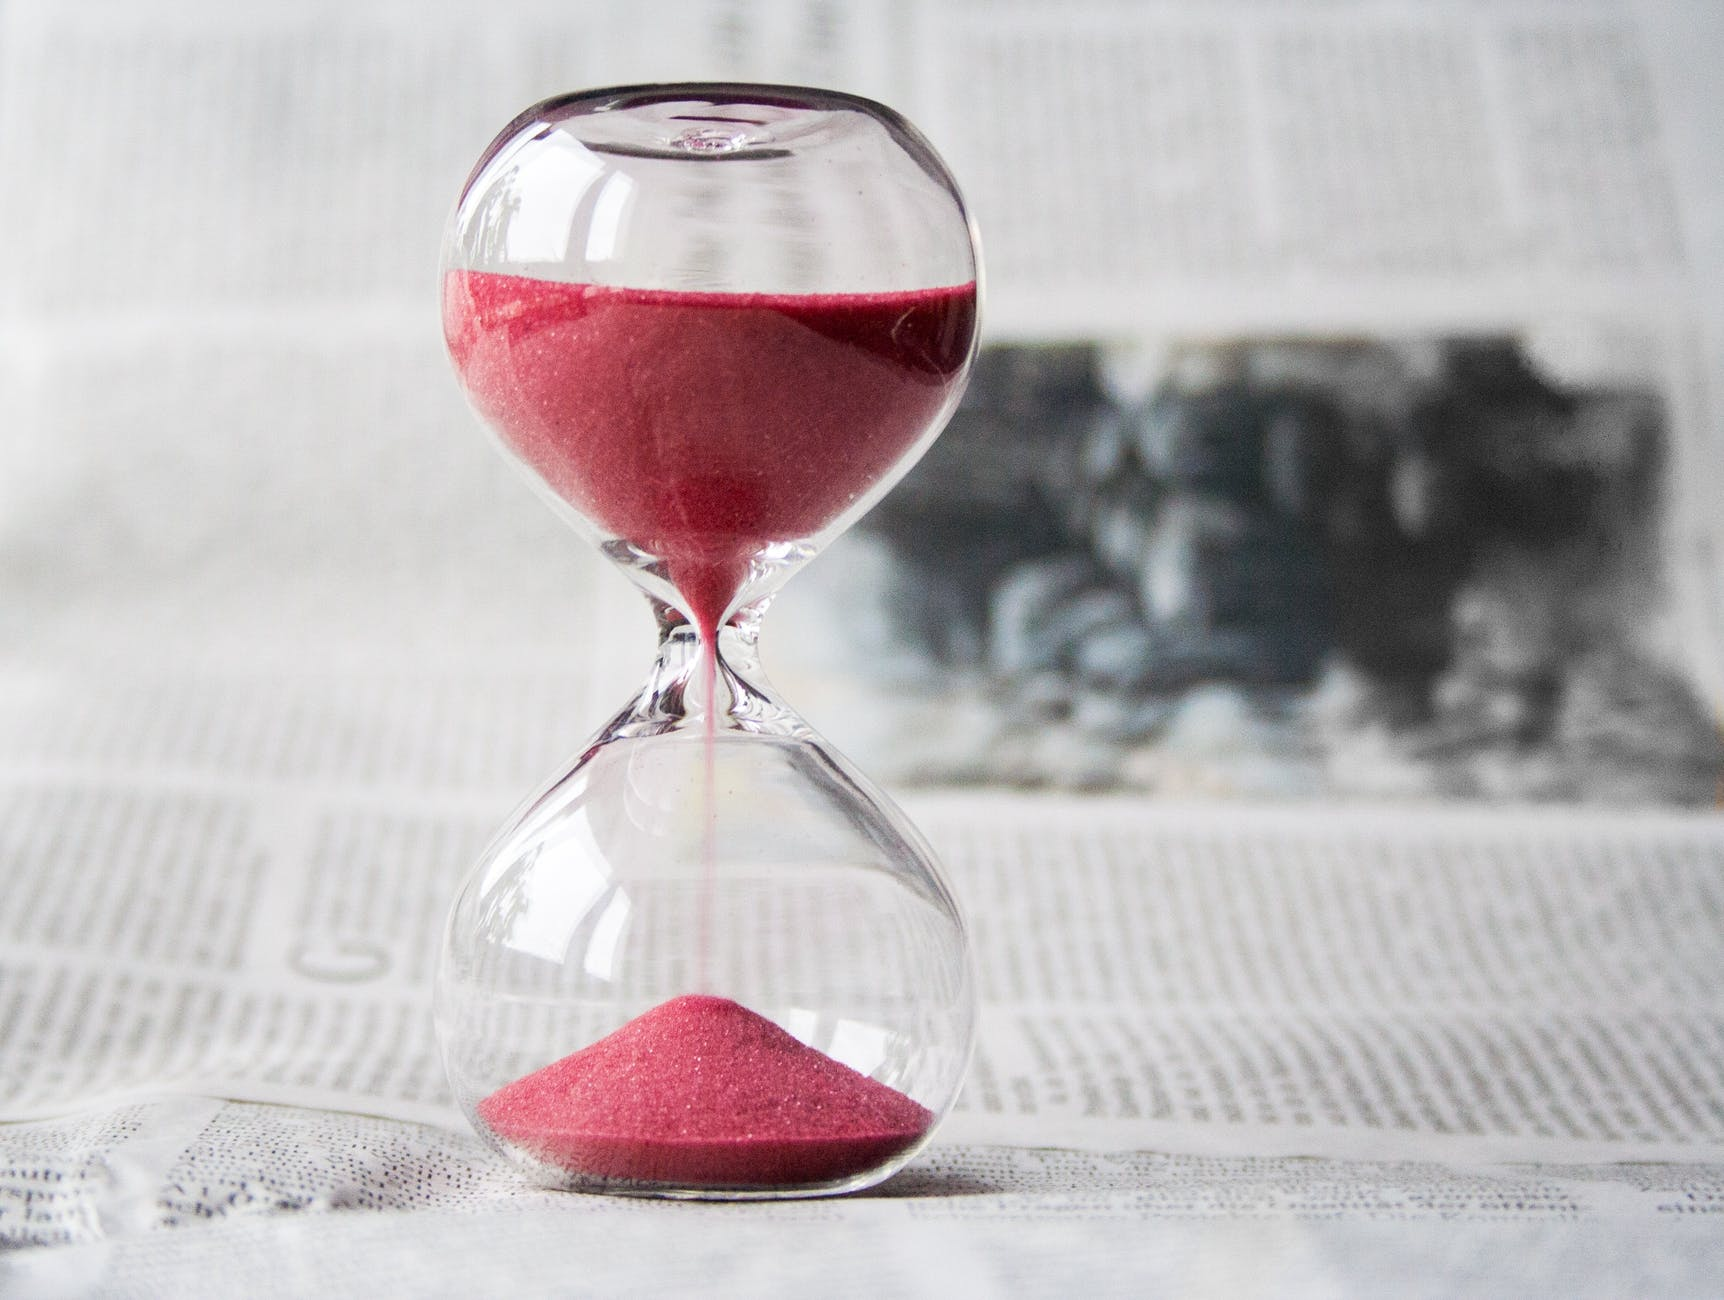 Hour Glass shows the passing of time. We are mortals.